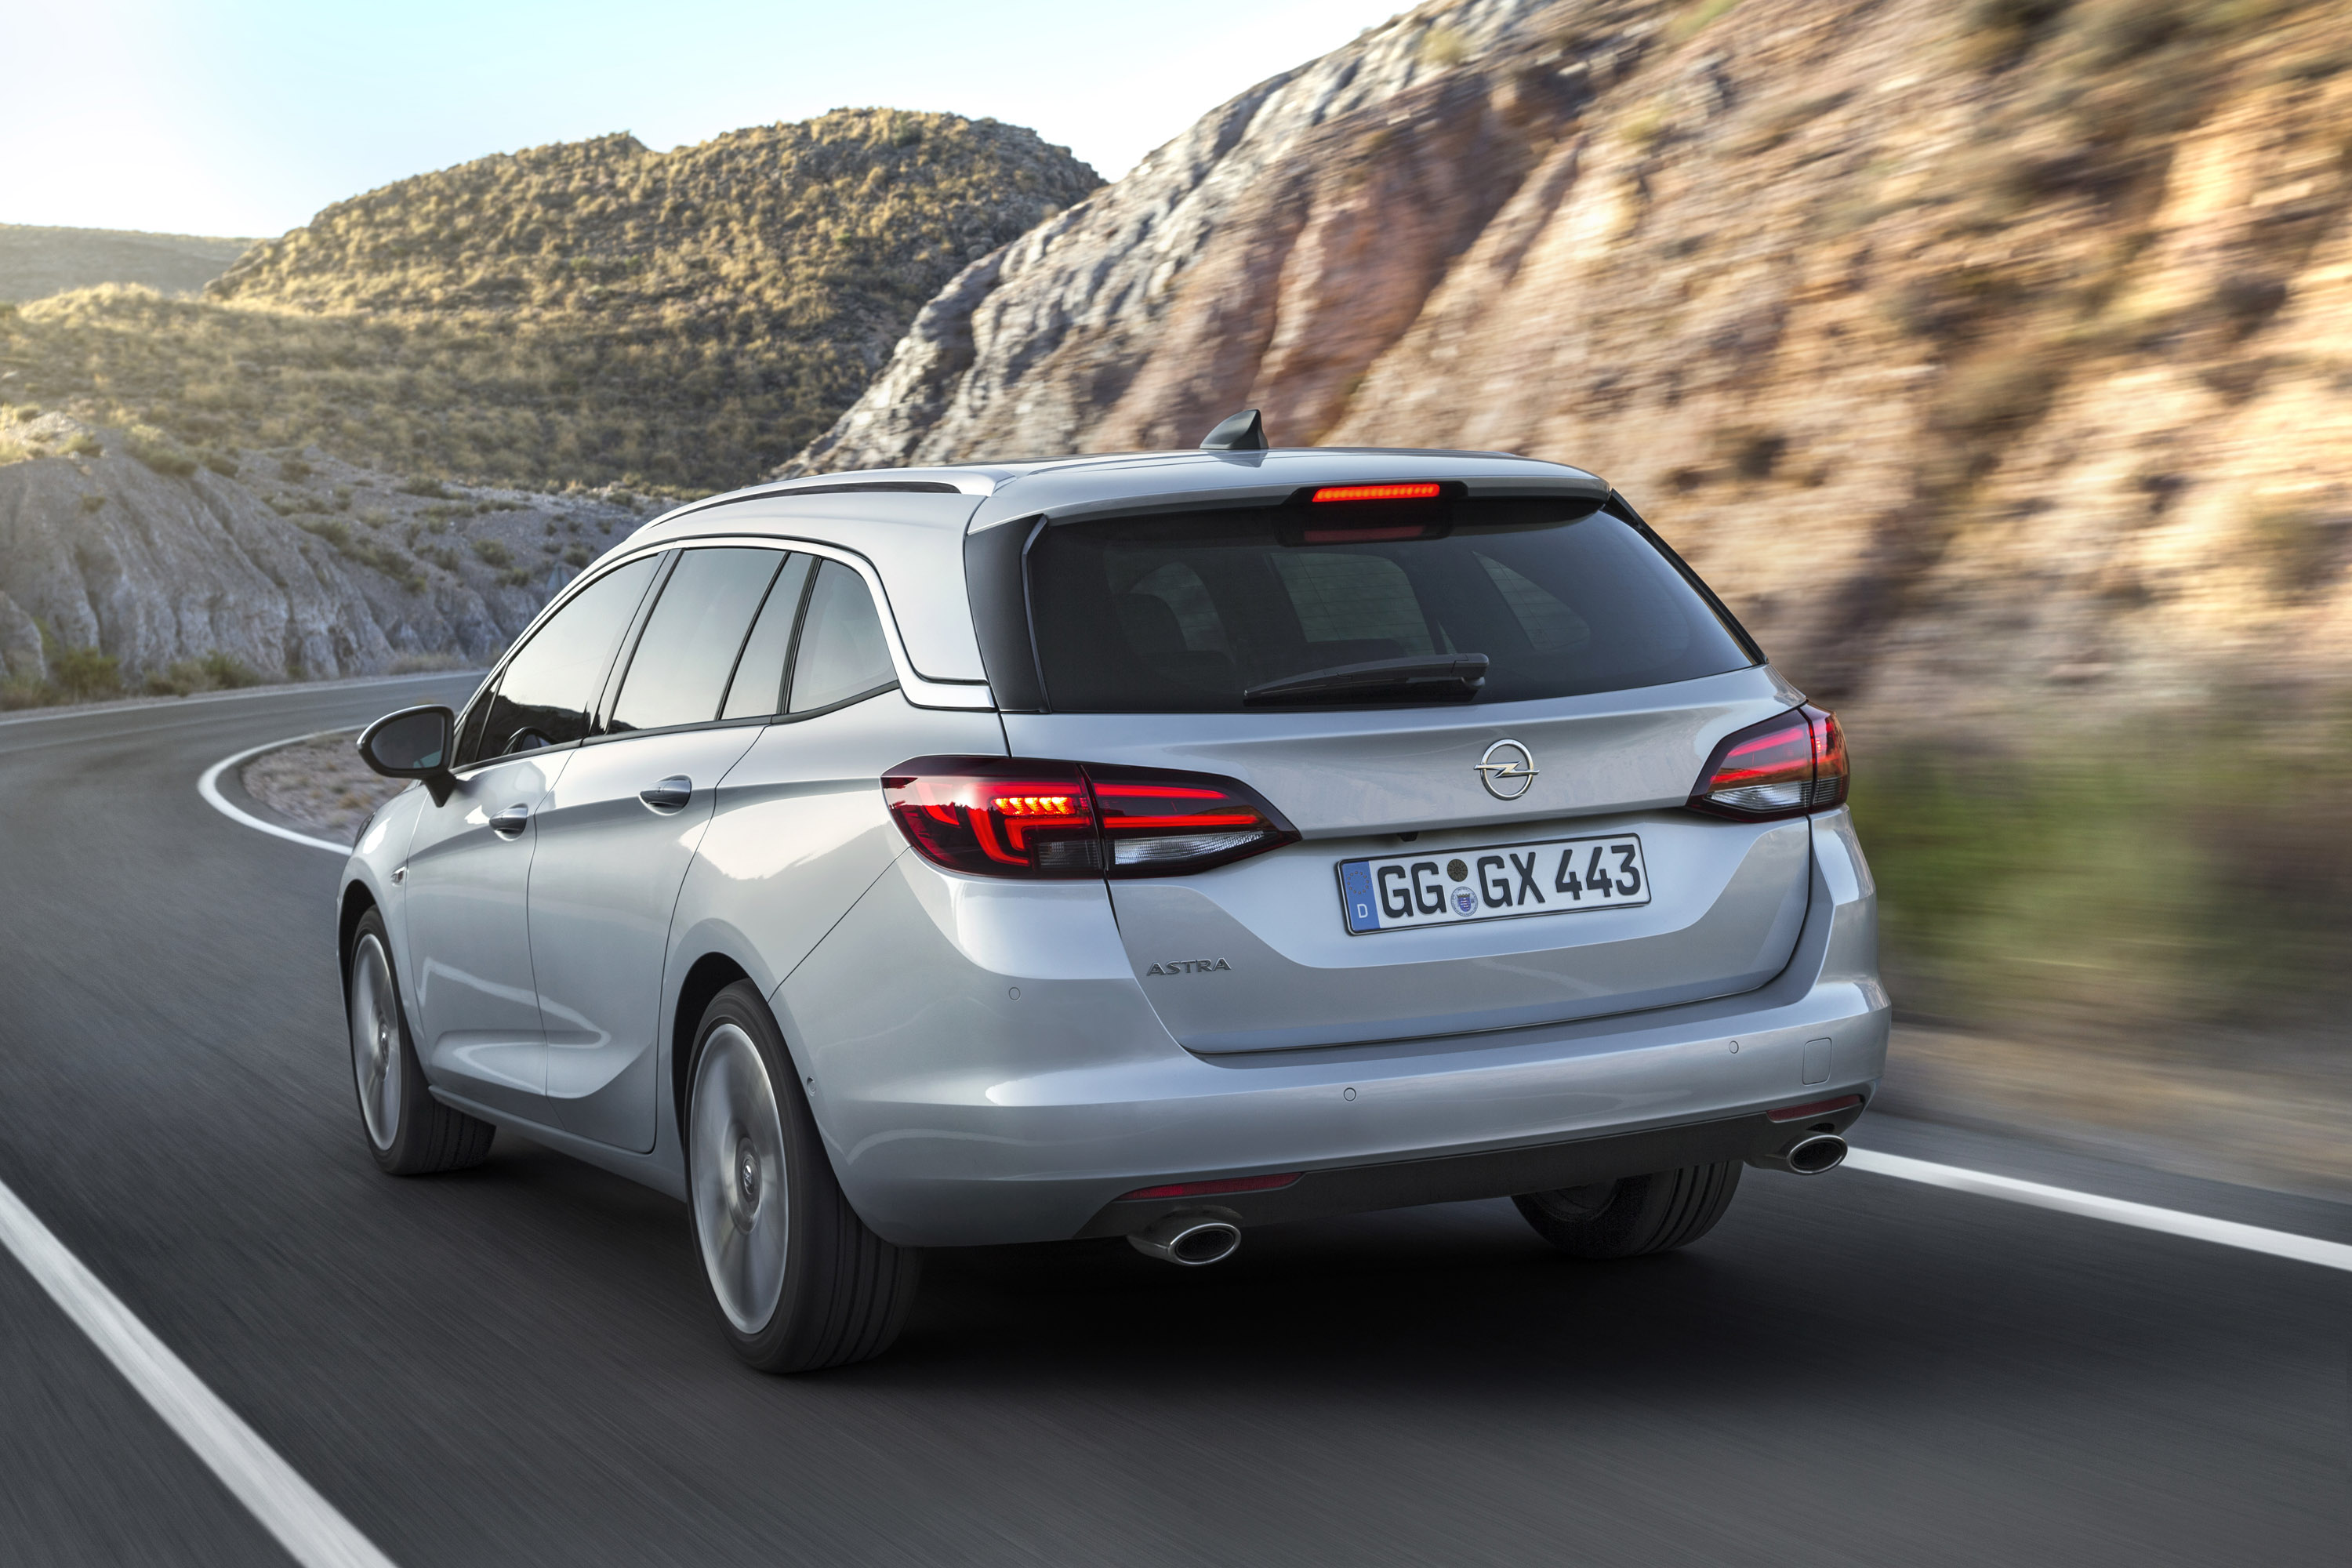 2016 Opel Astra Sports Tourer Hd Pictures Carsinvasion Com